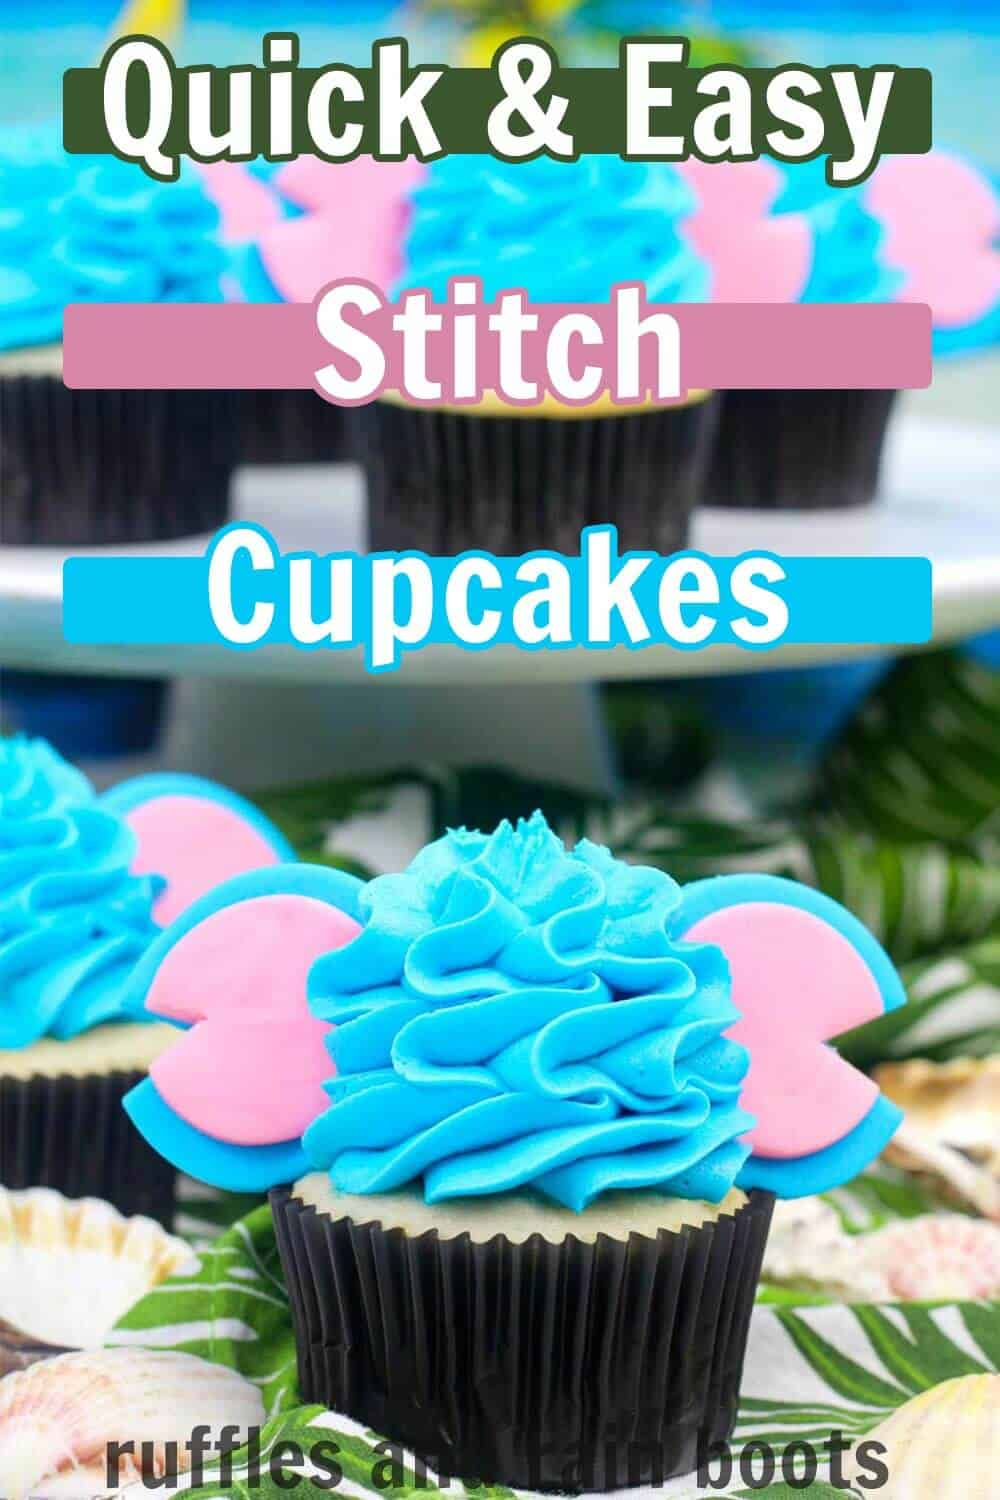 pink and blue Mickey ears on blue buttercream frosted cupcake on tropical background with text which reads quick and easy Stitch cupcakes